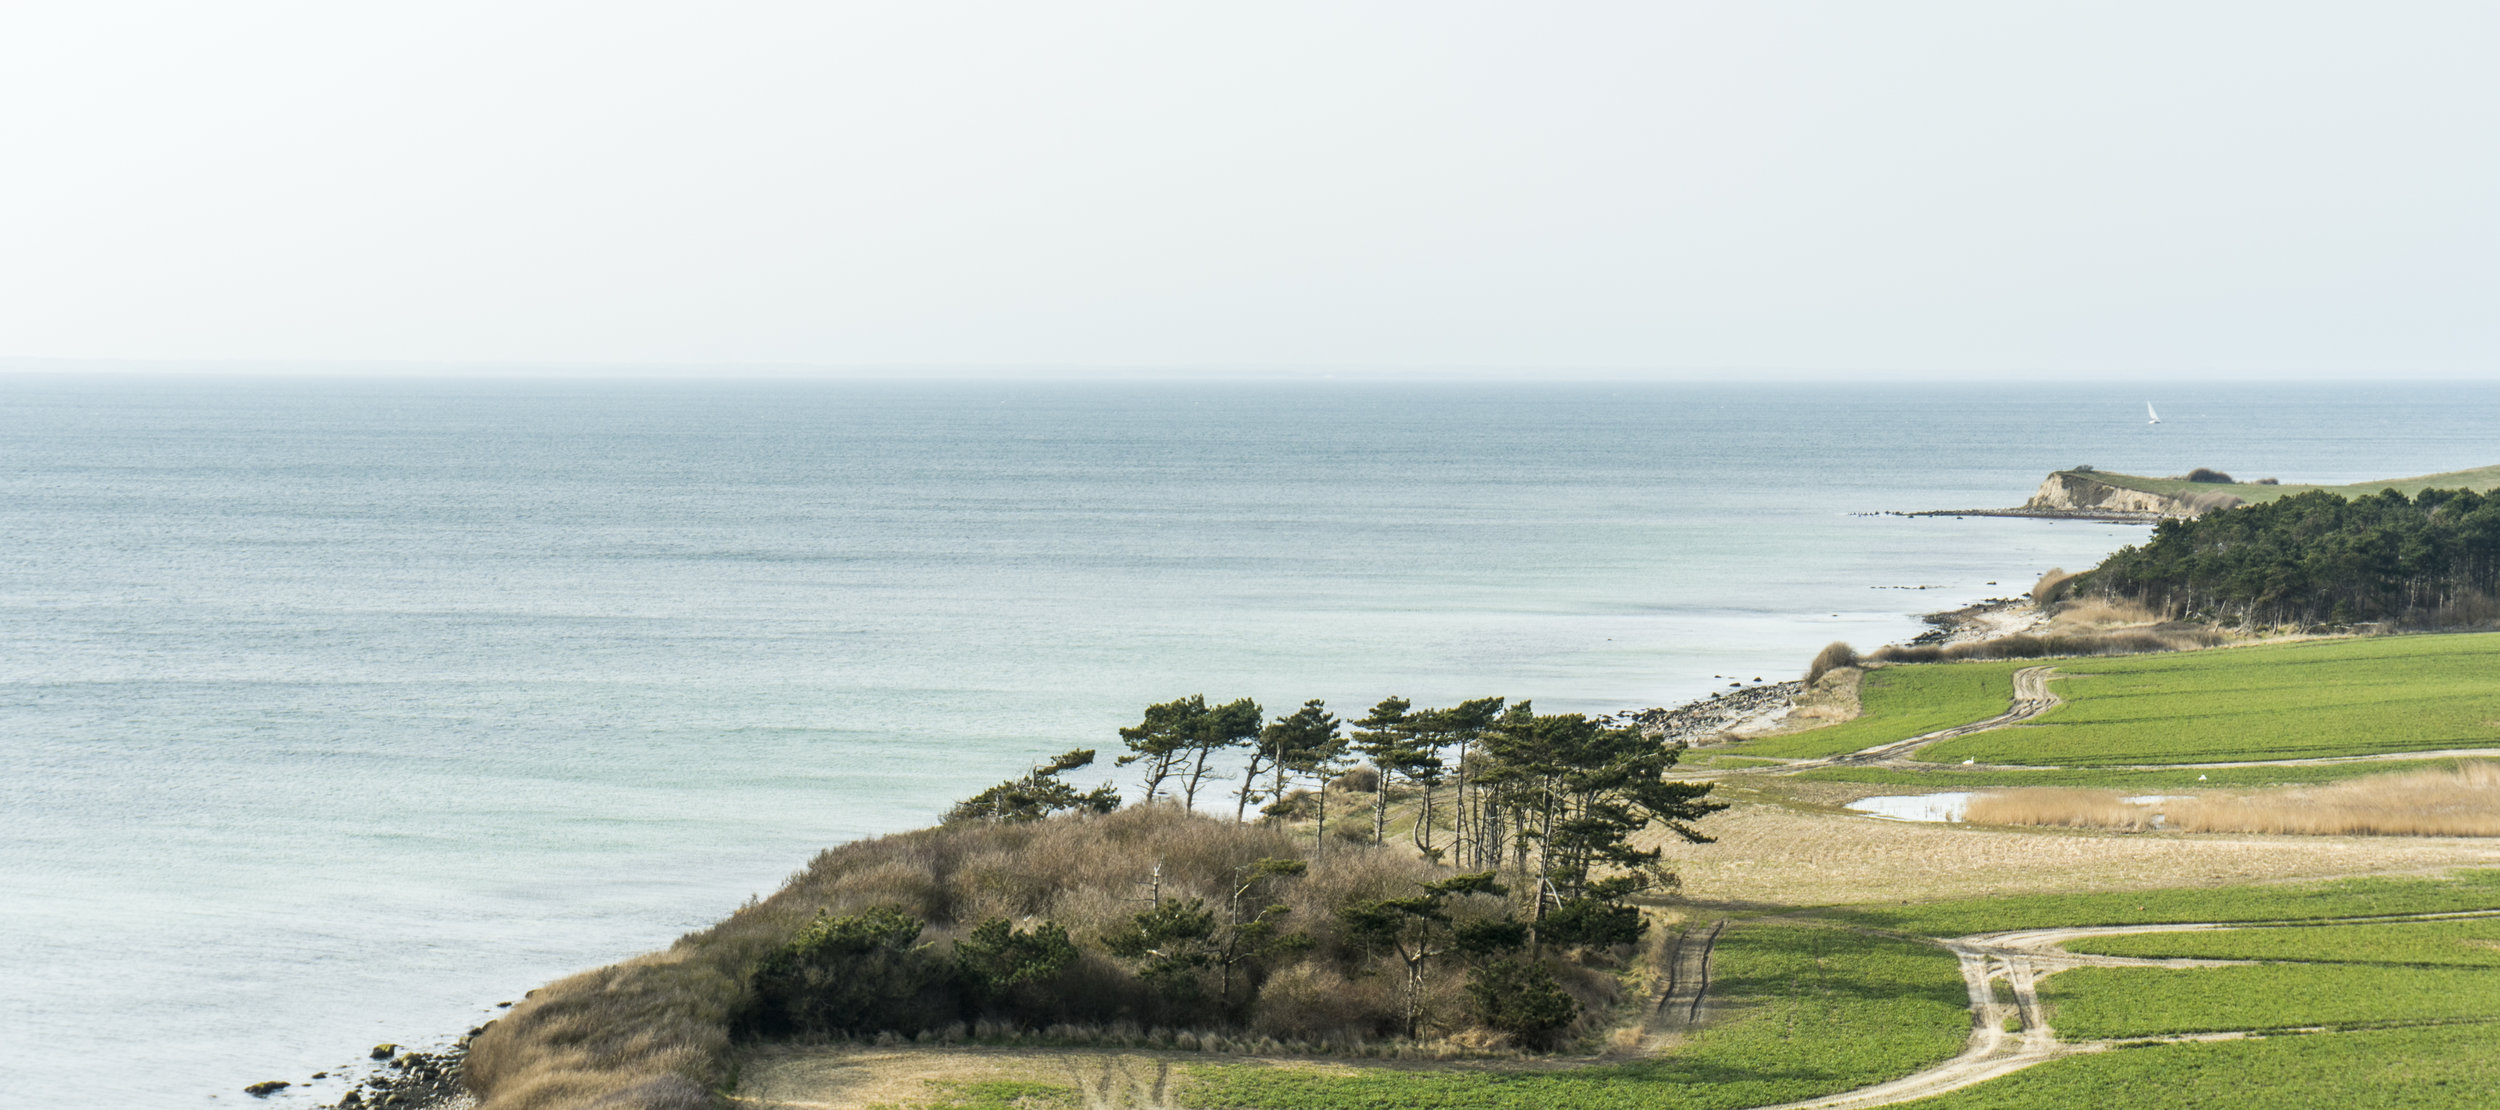 A view from the south of Samsø, a small island in 'the middle' of Denmark. Picture by Amélie Drouet